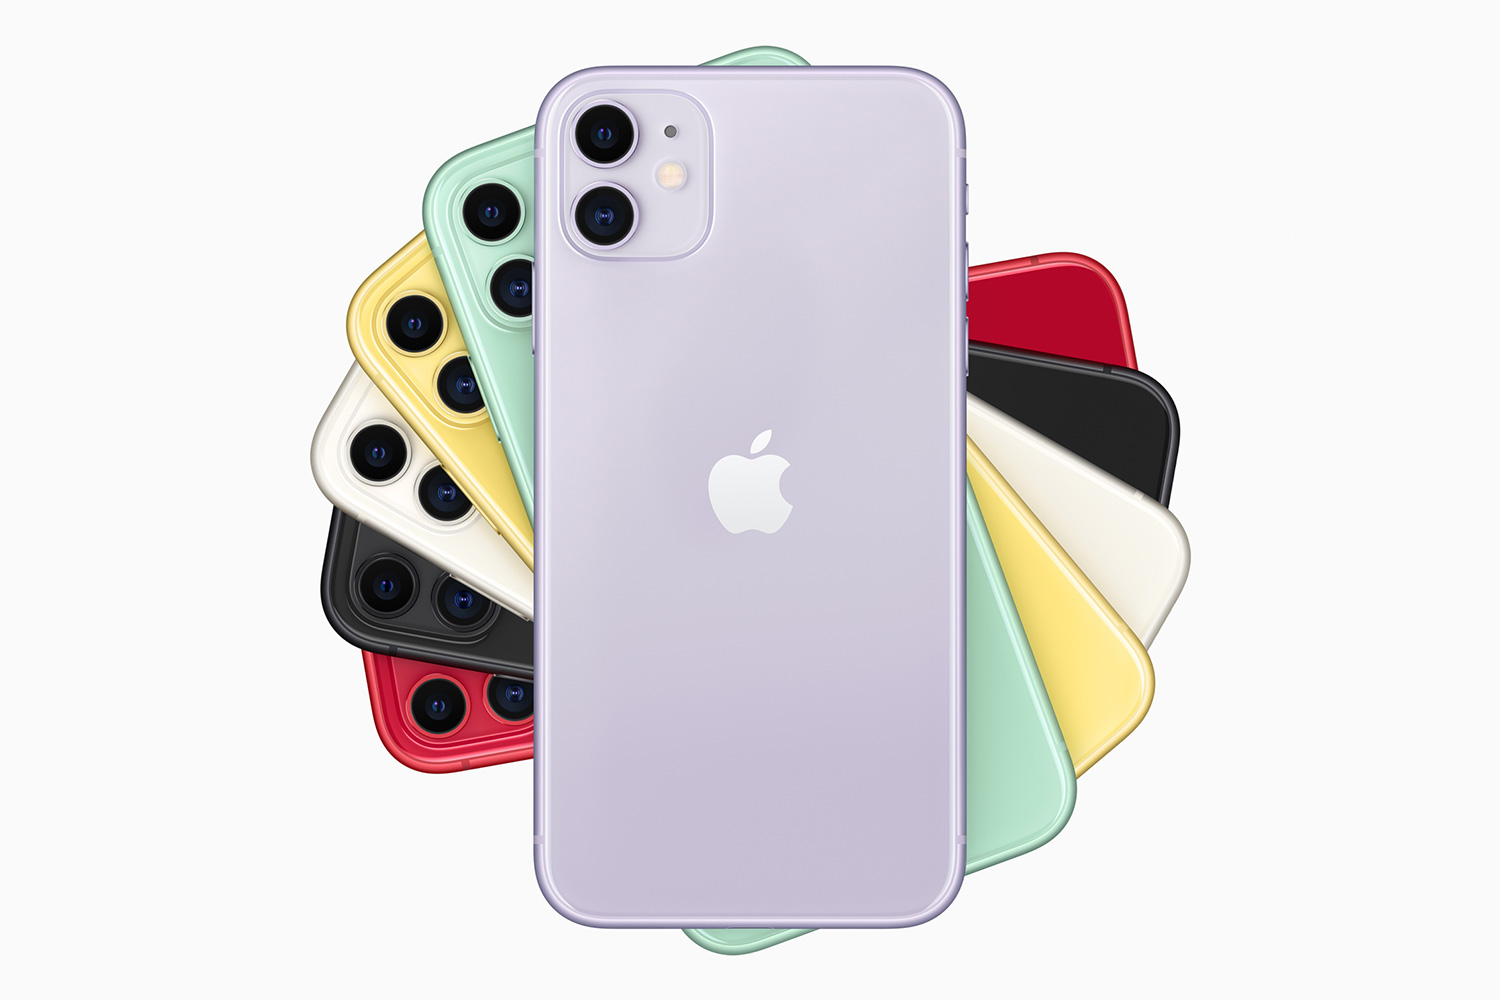 آیفون ۱۱ اپل / apple iphone 11